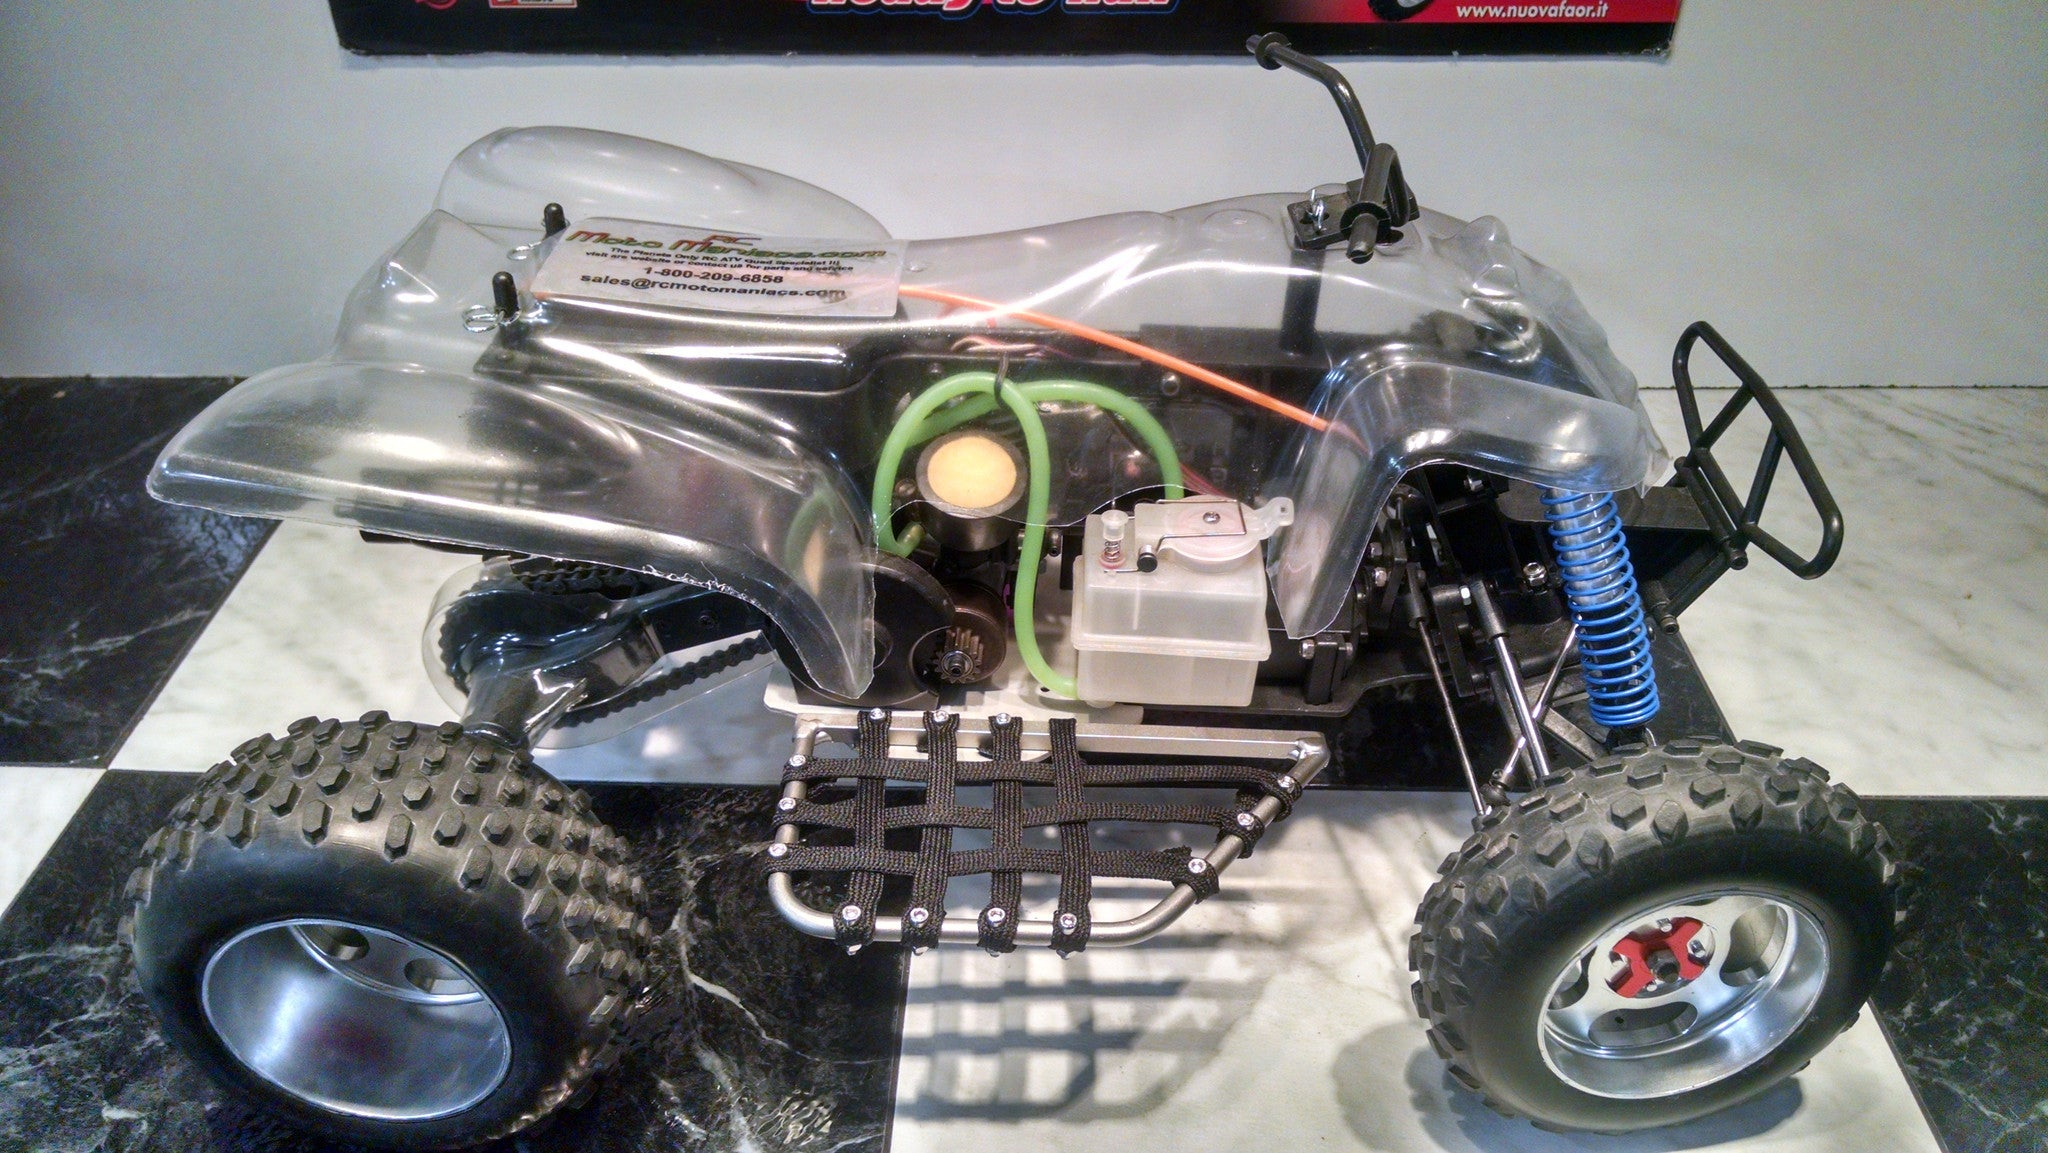 NUOVA FAOR ATV FEATURING RCMM RACING PACKAGE